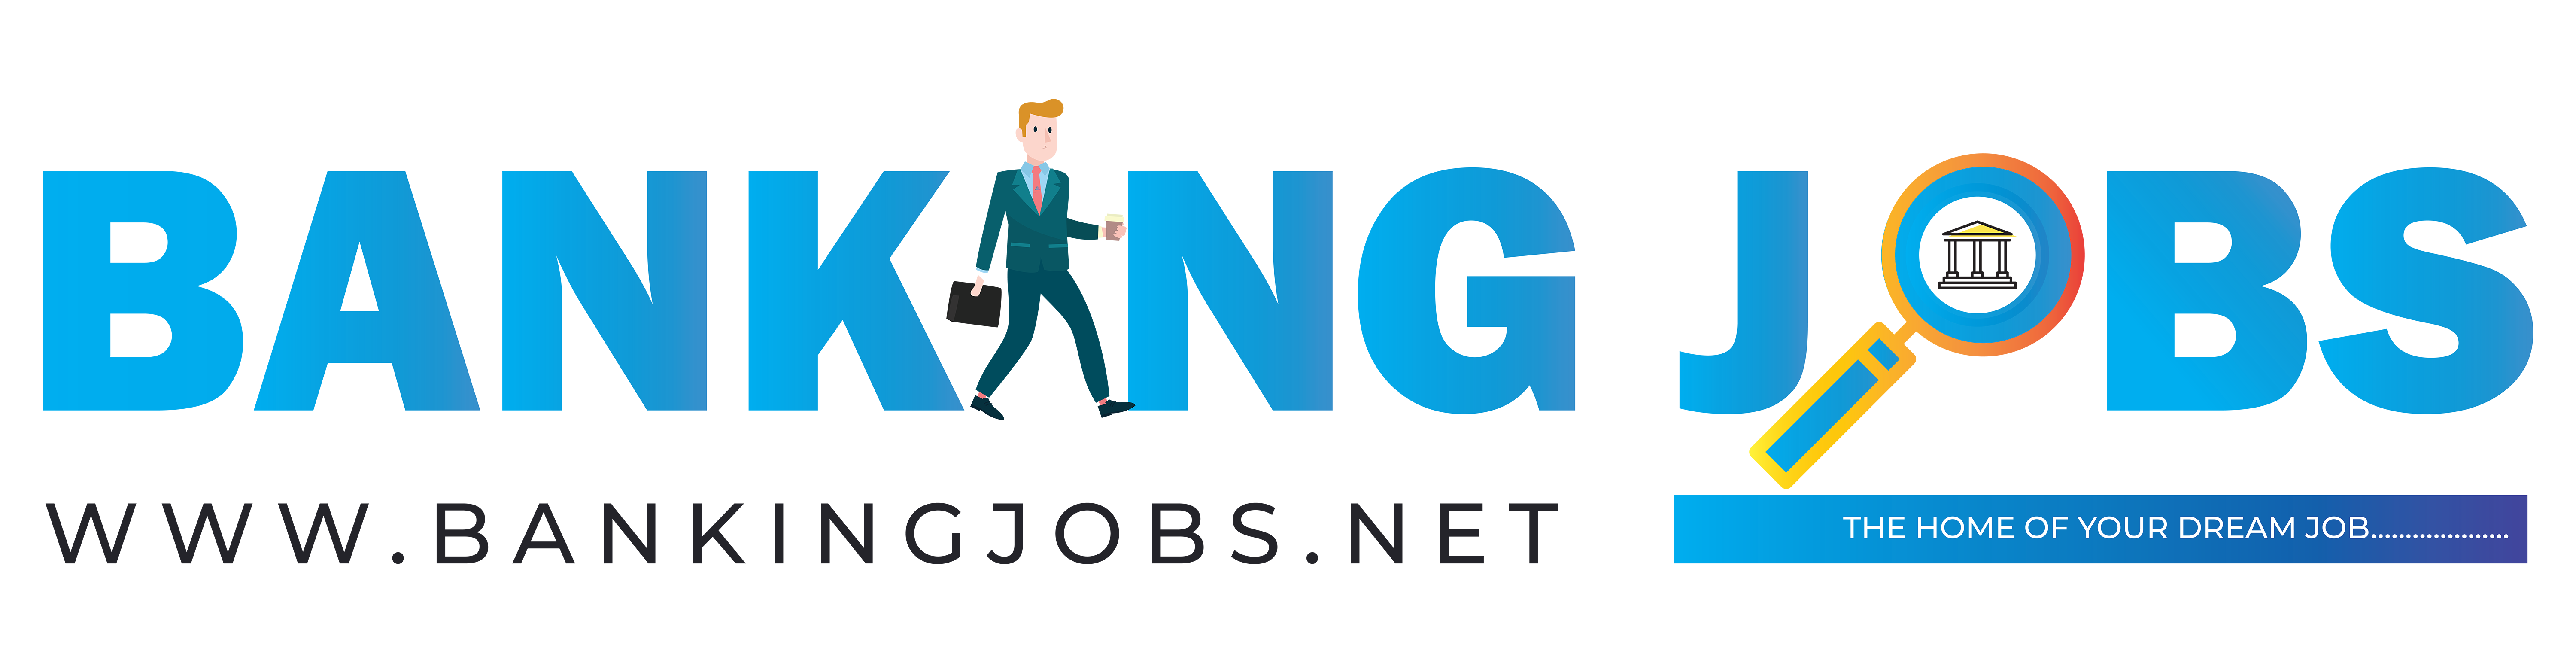 Banking Jobs Network